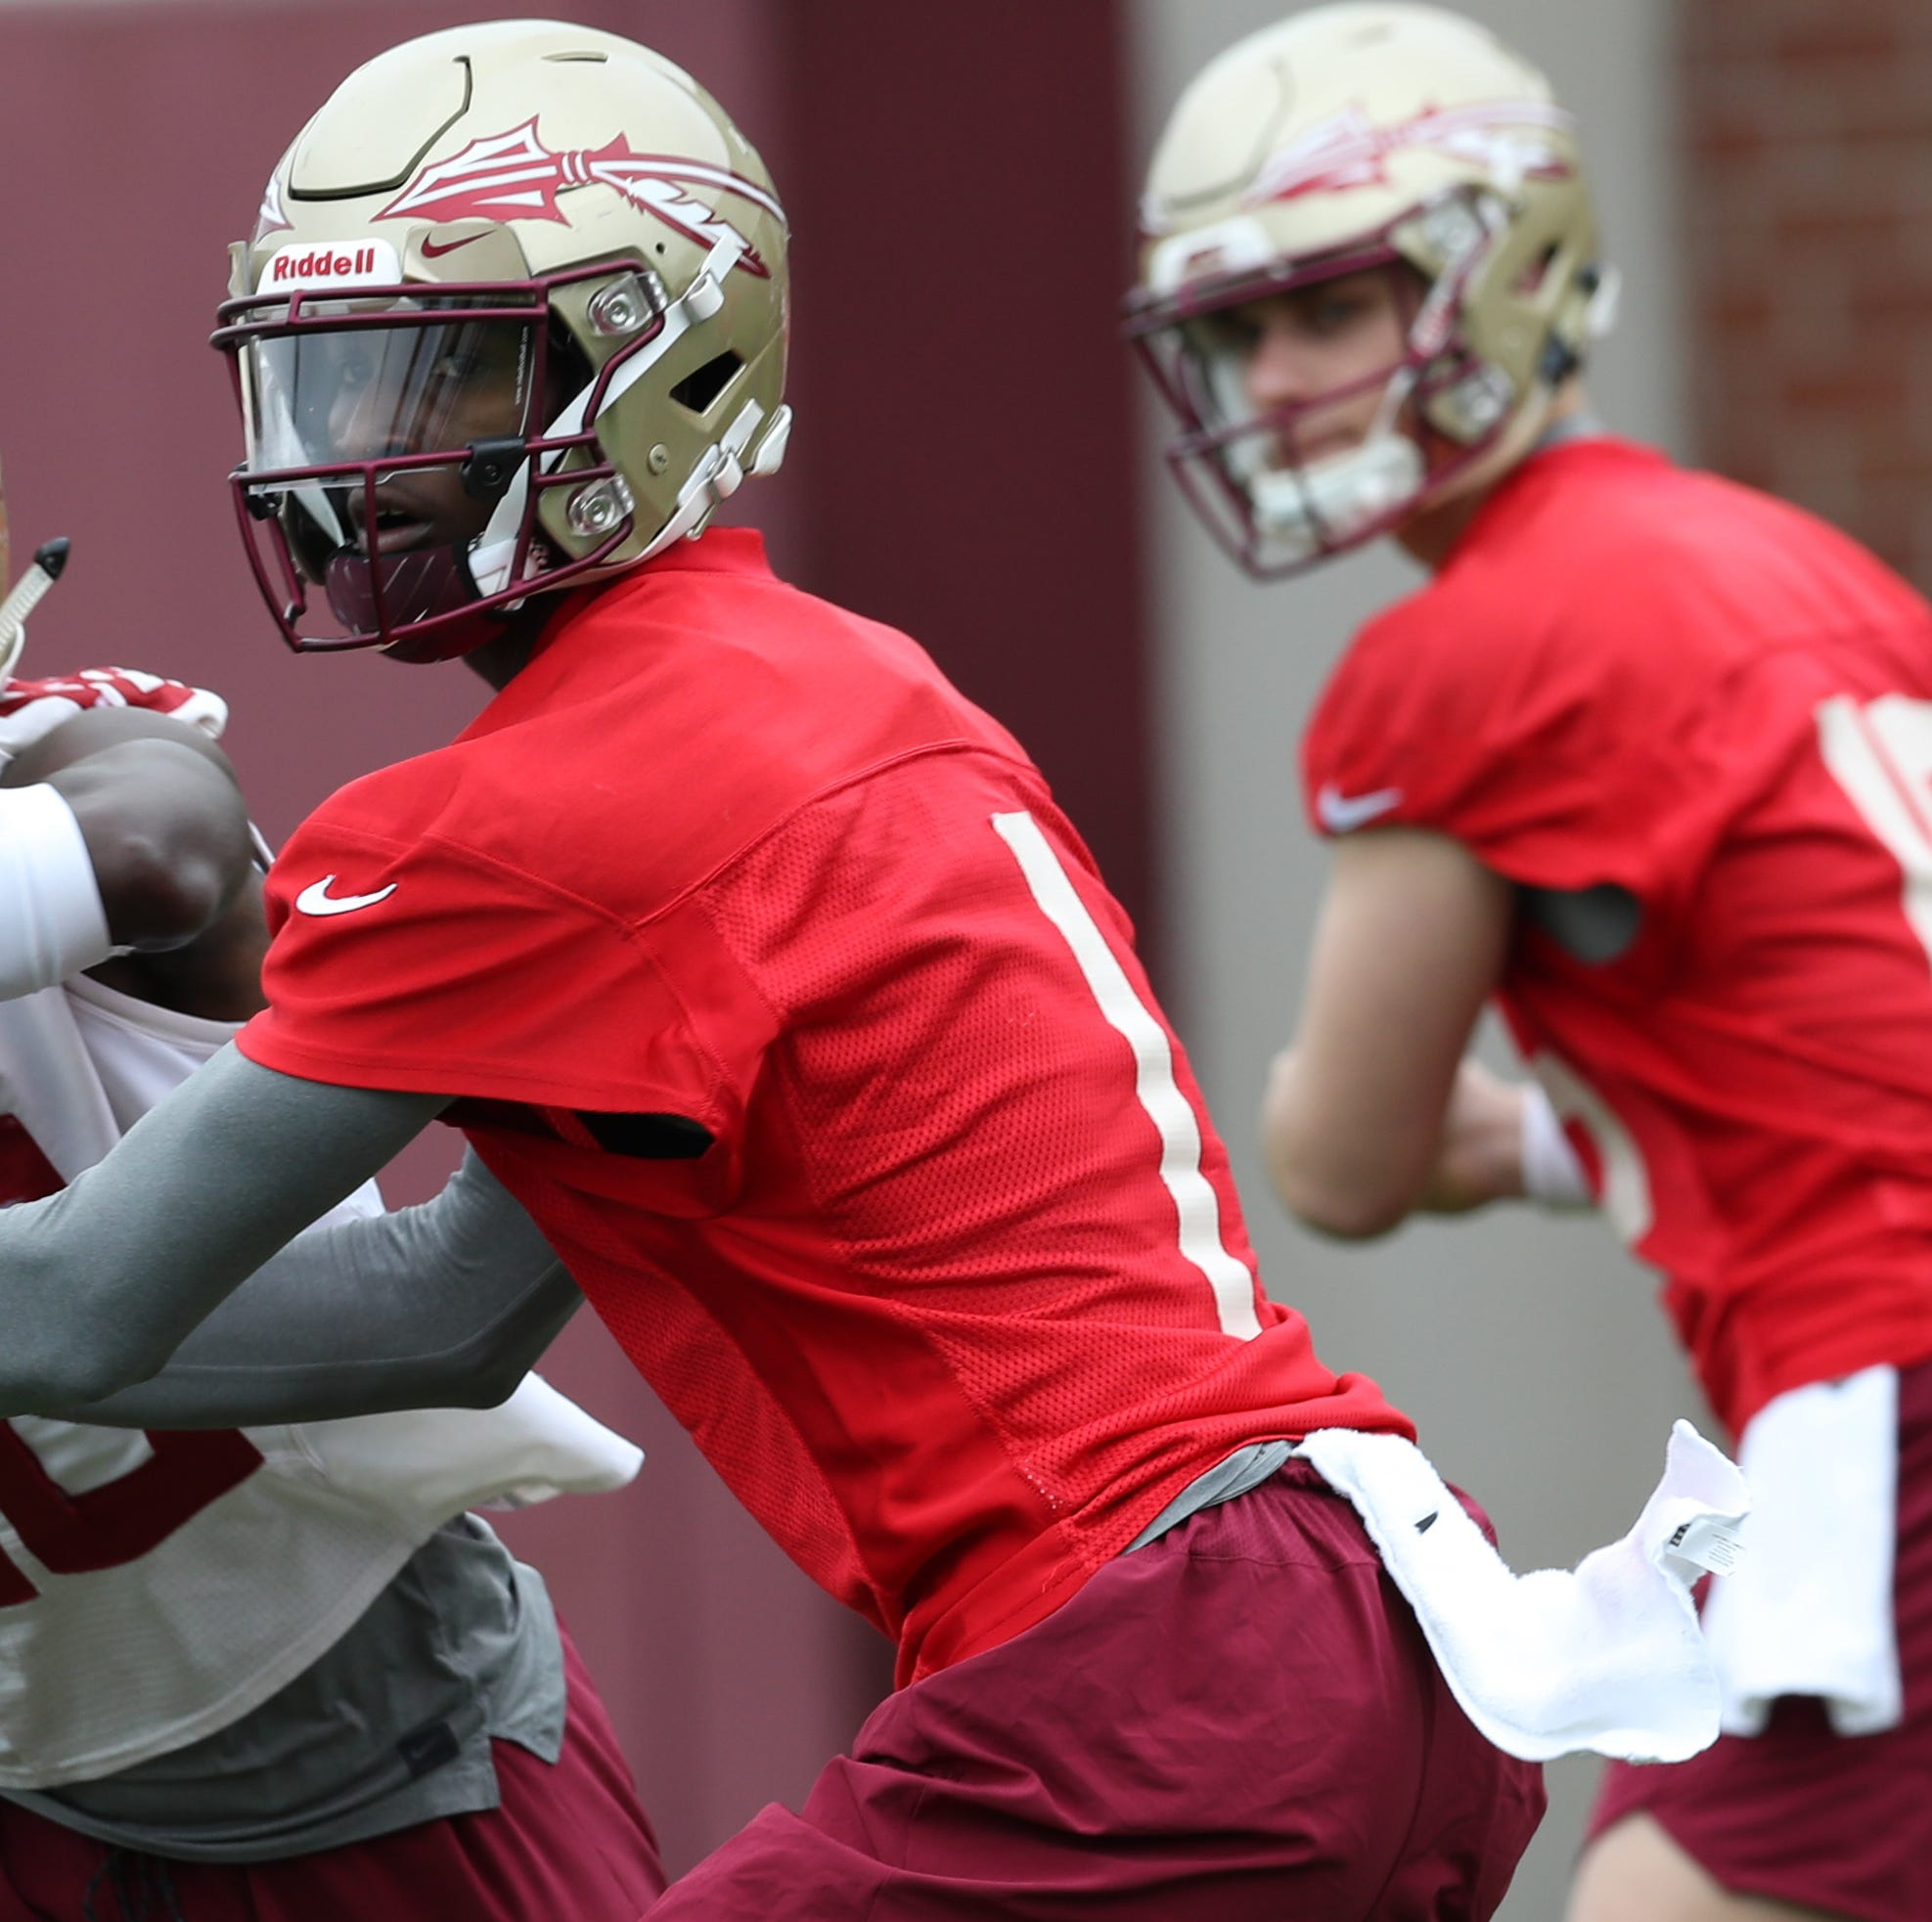 Garnet and Gold Spring Game: What should Florida State fans be looking for?